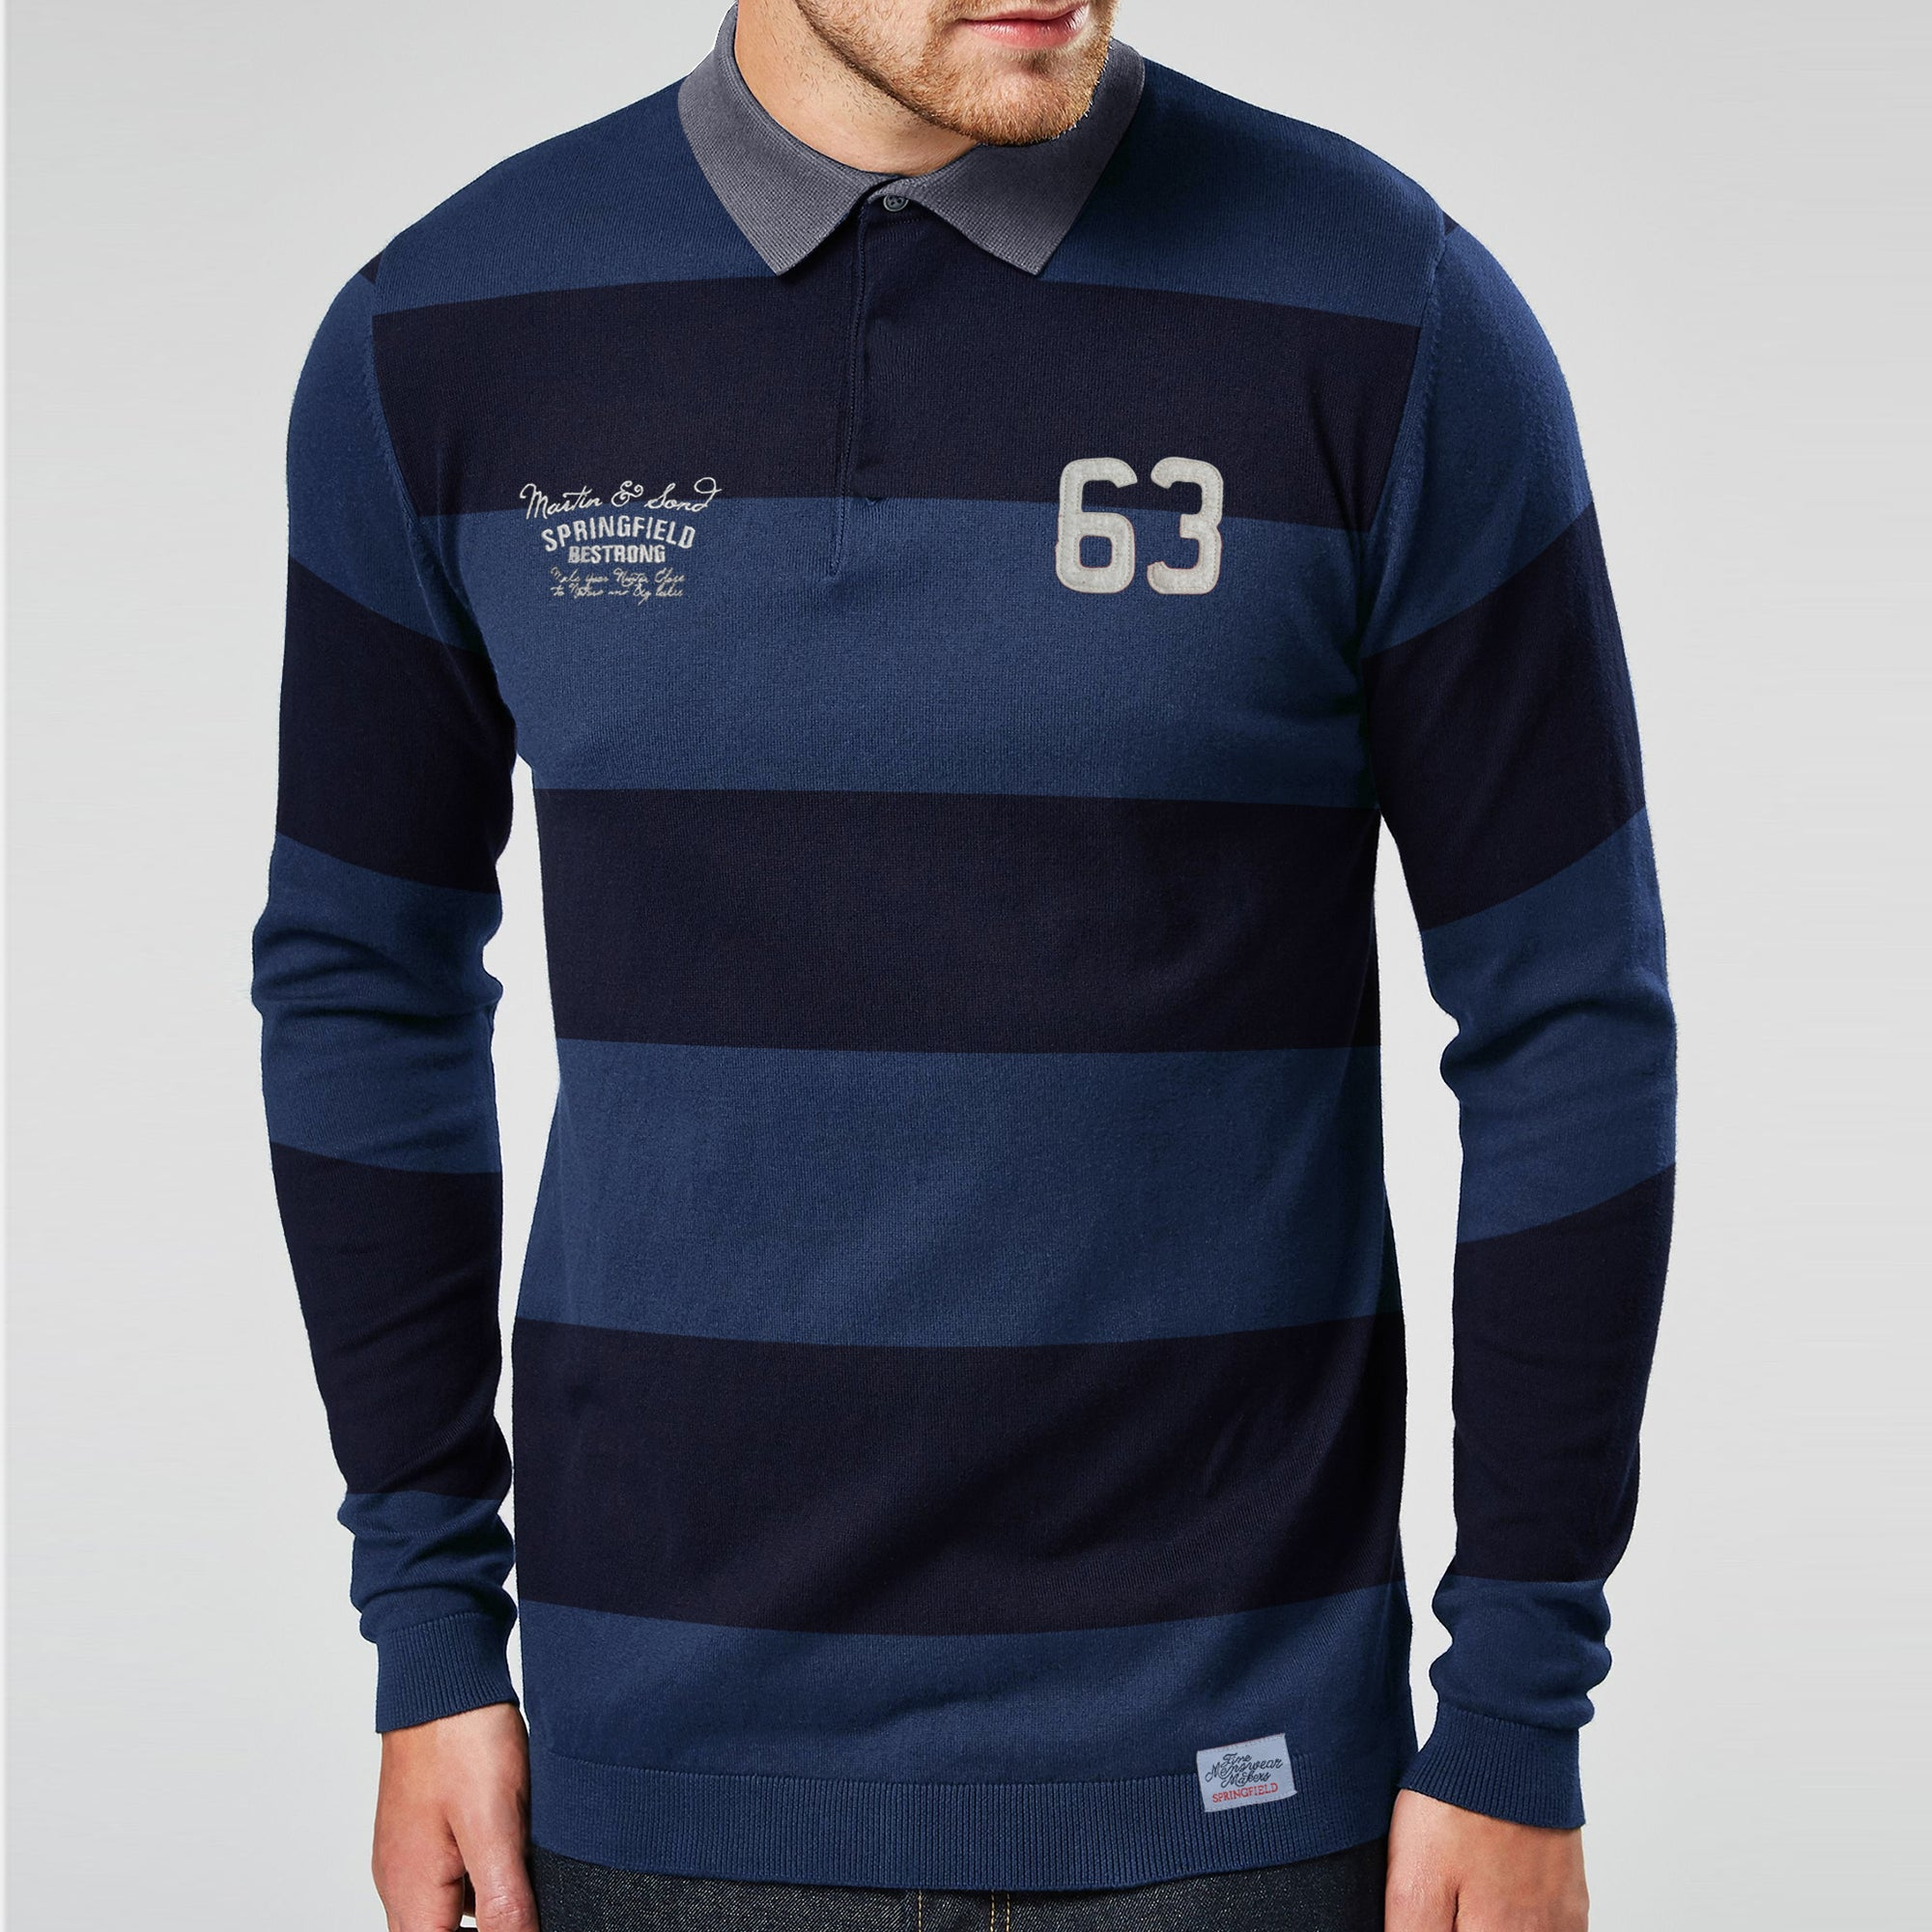 Springfield Long Sleeve Single Jersey Polo Shirt For Men-Dark Navy & Dark Blue Stripes-SP279